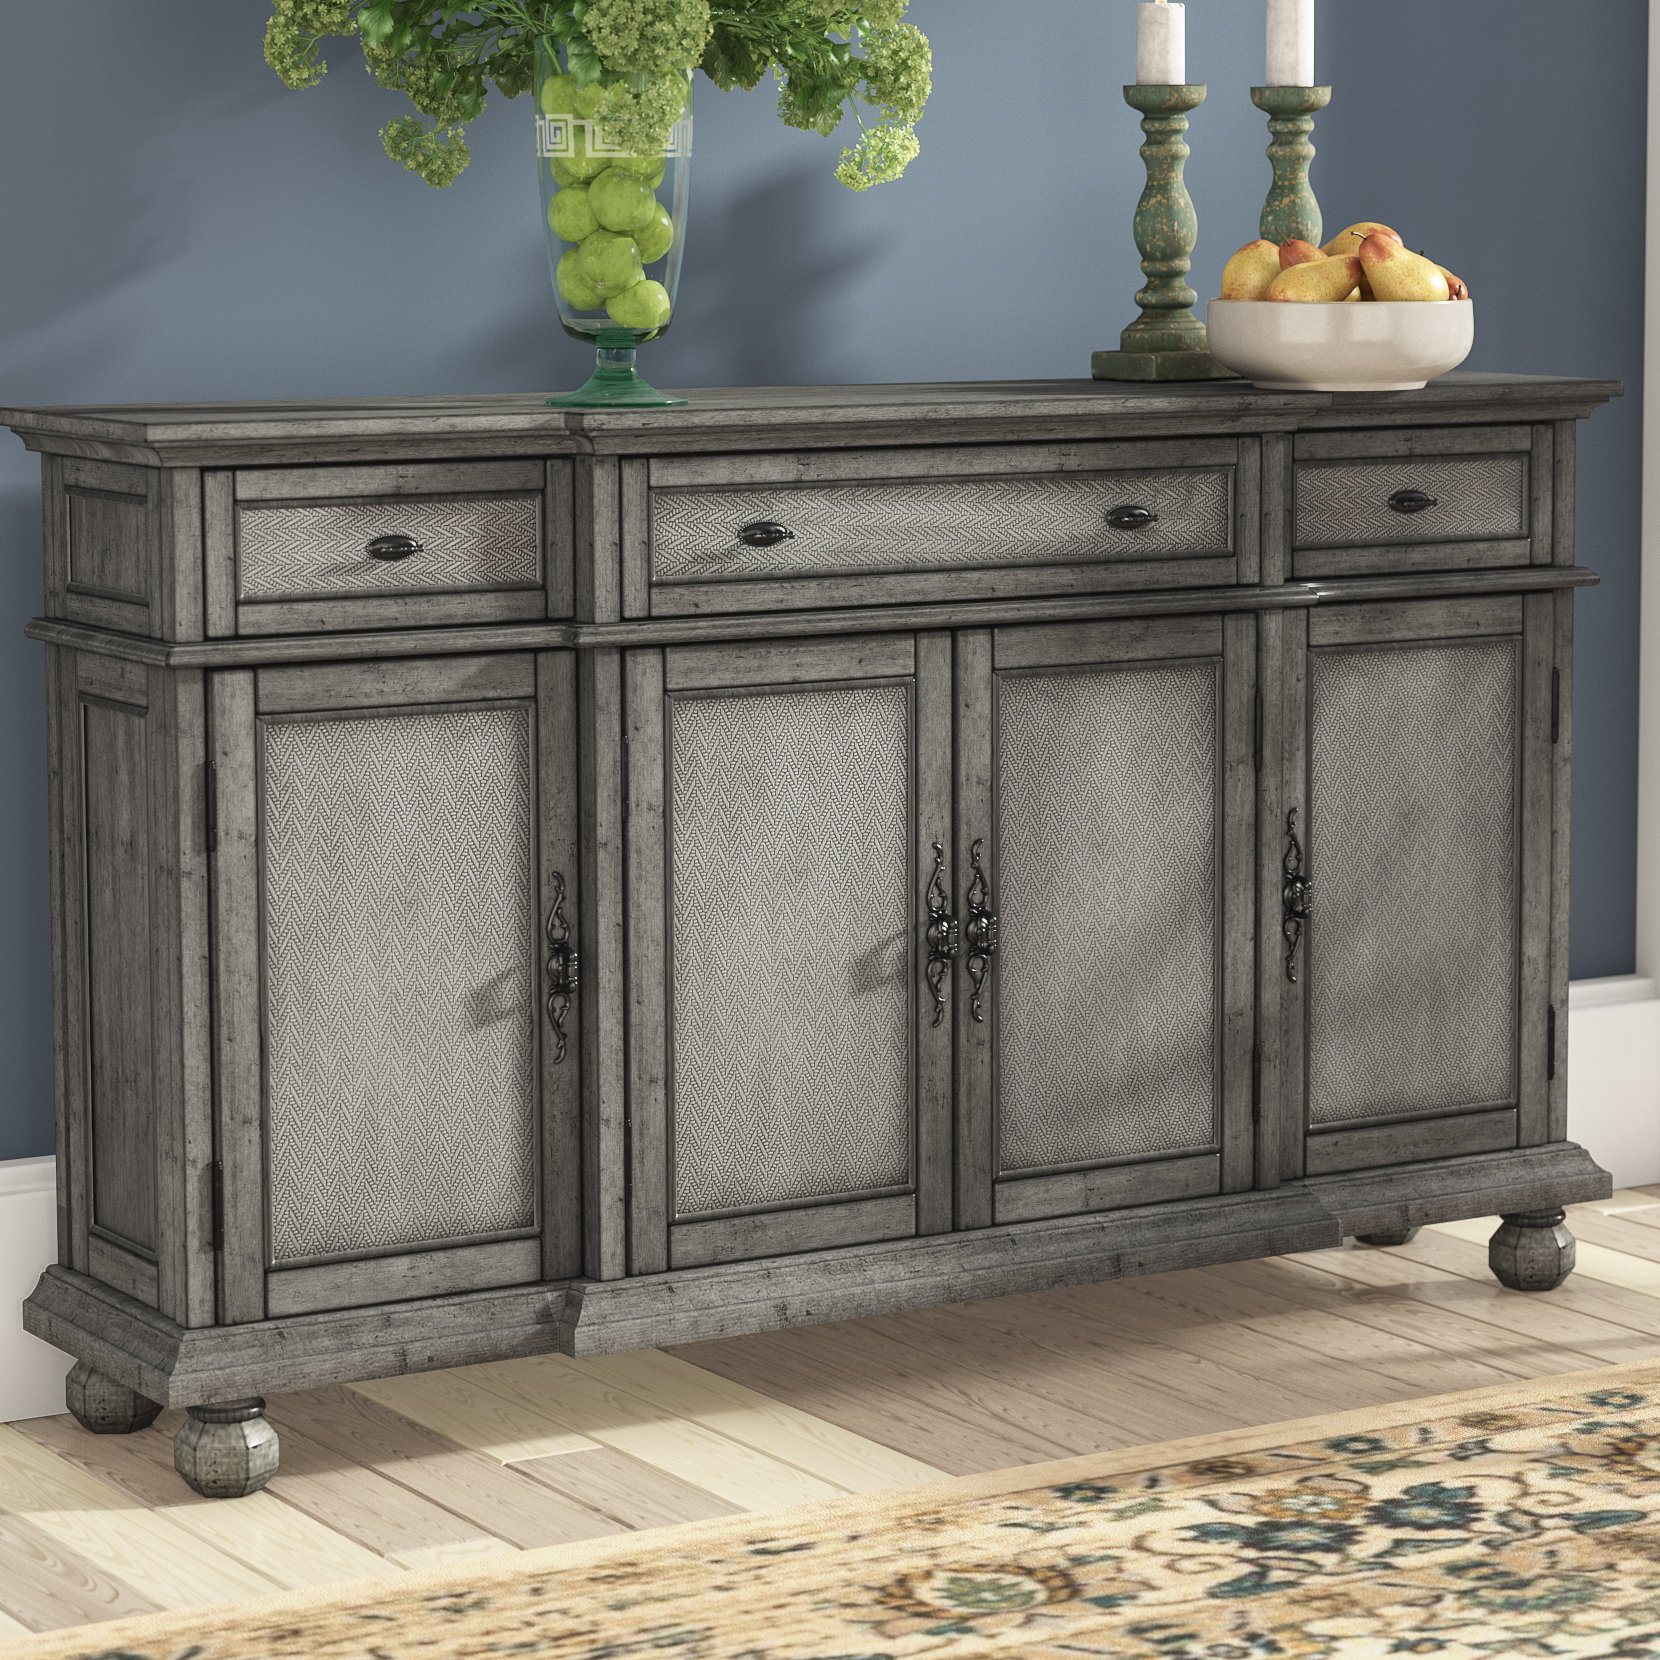 60 Inch Credenza | Wayfair With Regard To Chaffins Sideboards (Photo 12 of 30)